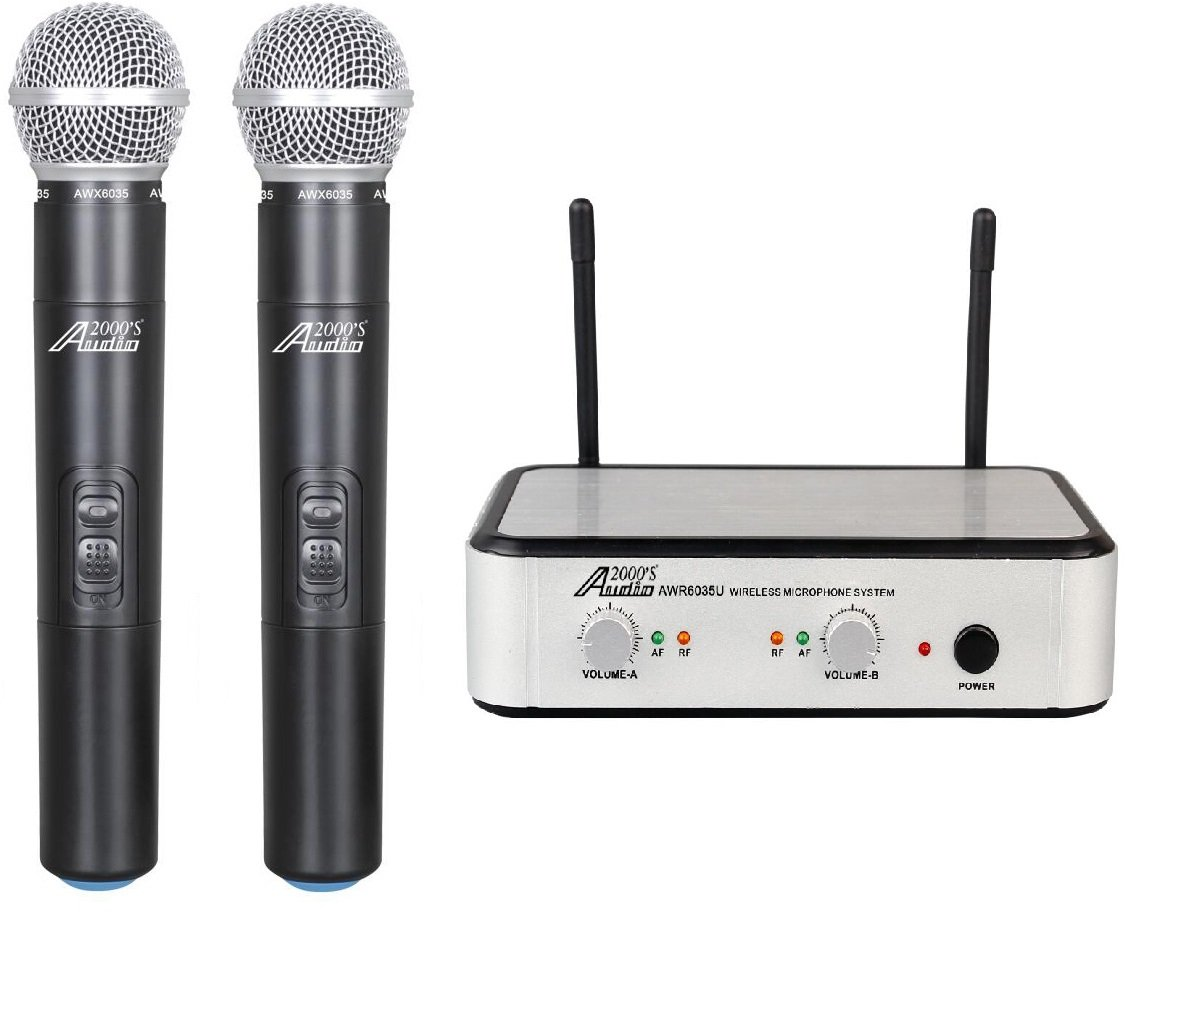 Audio 2000's AWM6035U Dual-Channel UHF Wireless - 2 Handhelds